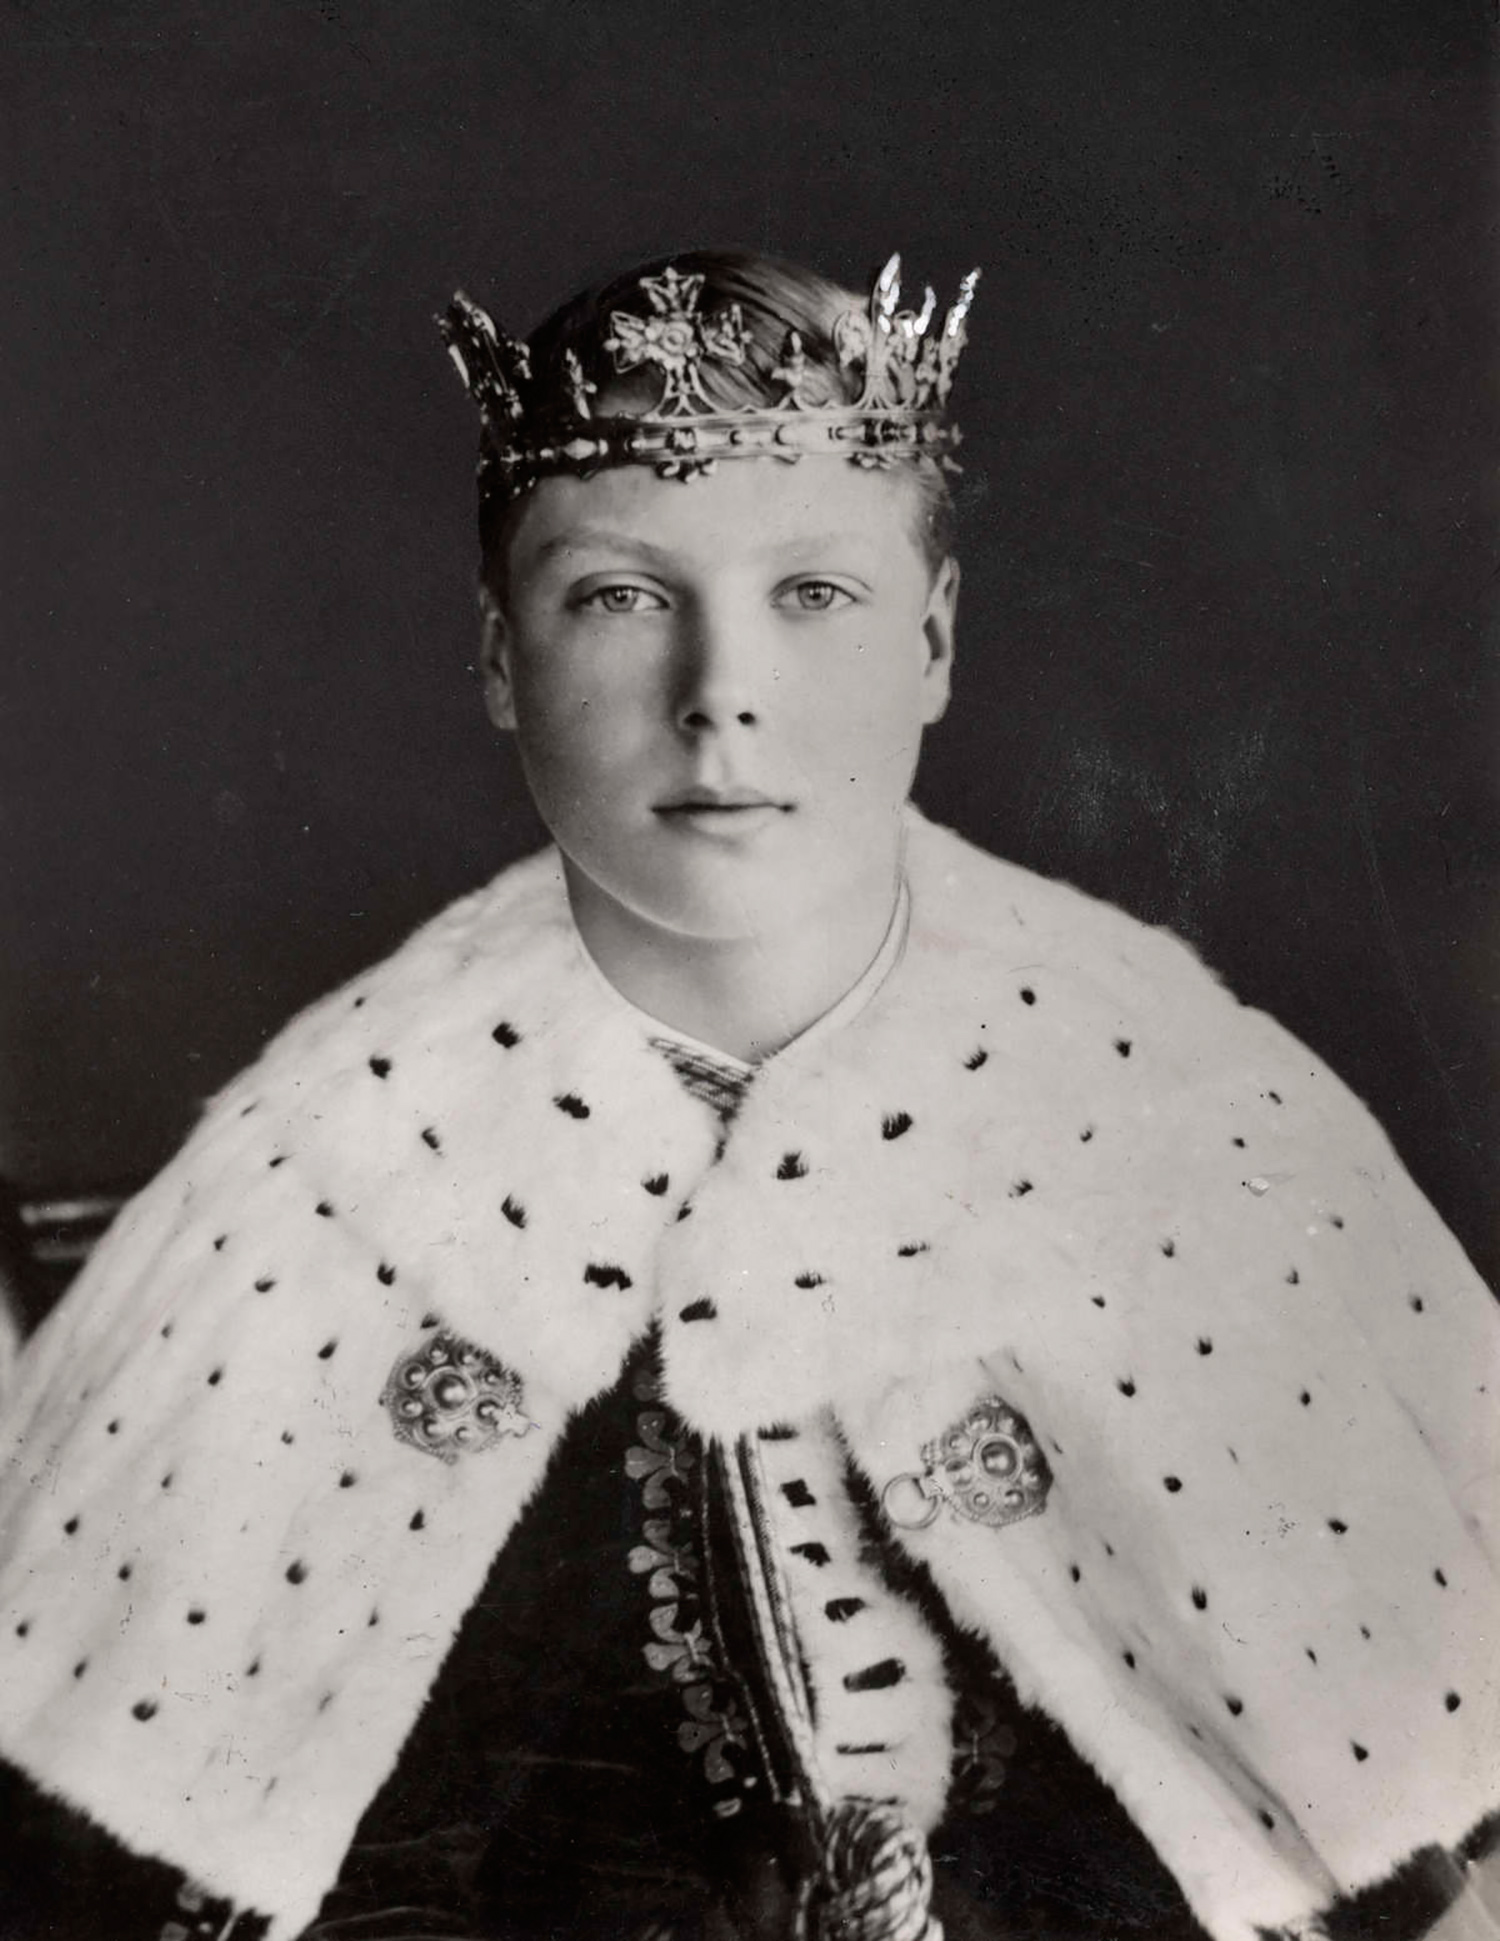 Young Prince   Edward (age 17)—later King Edward VIII and then the Duke of Windsor—in robes and coronet   at his investiture as Prince   of Wales in 1911. H  e acquired from John G. Hardy the black & white district check that would later bear his name.